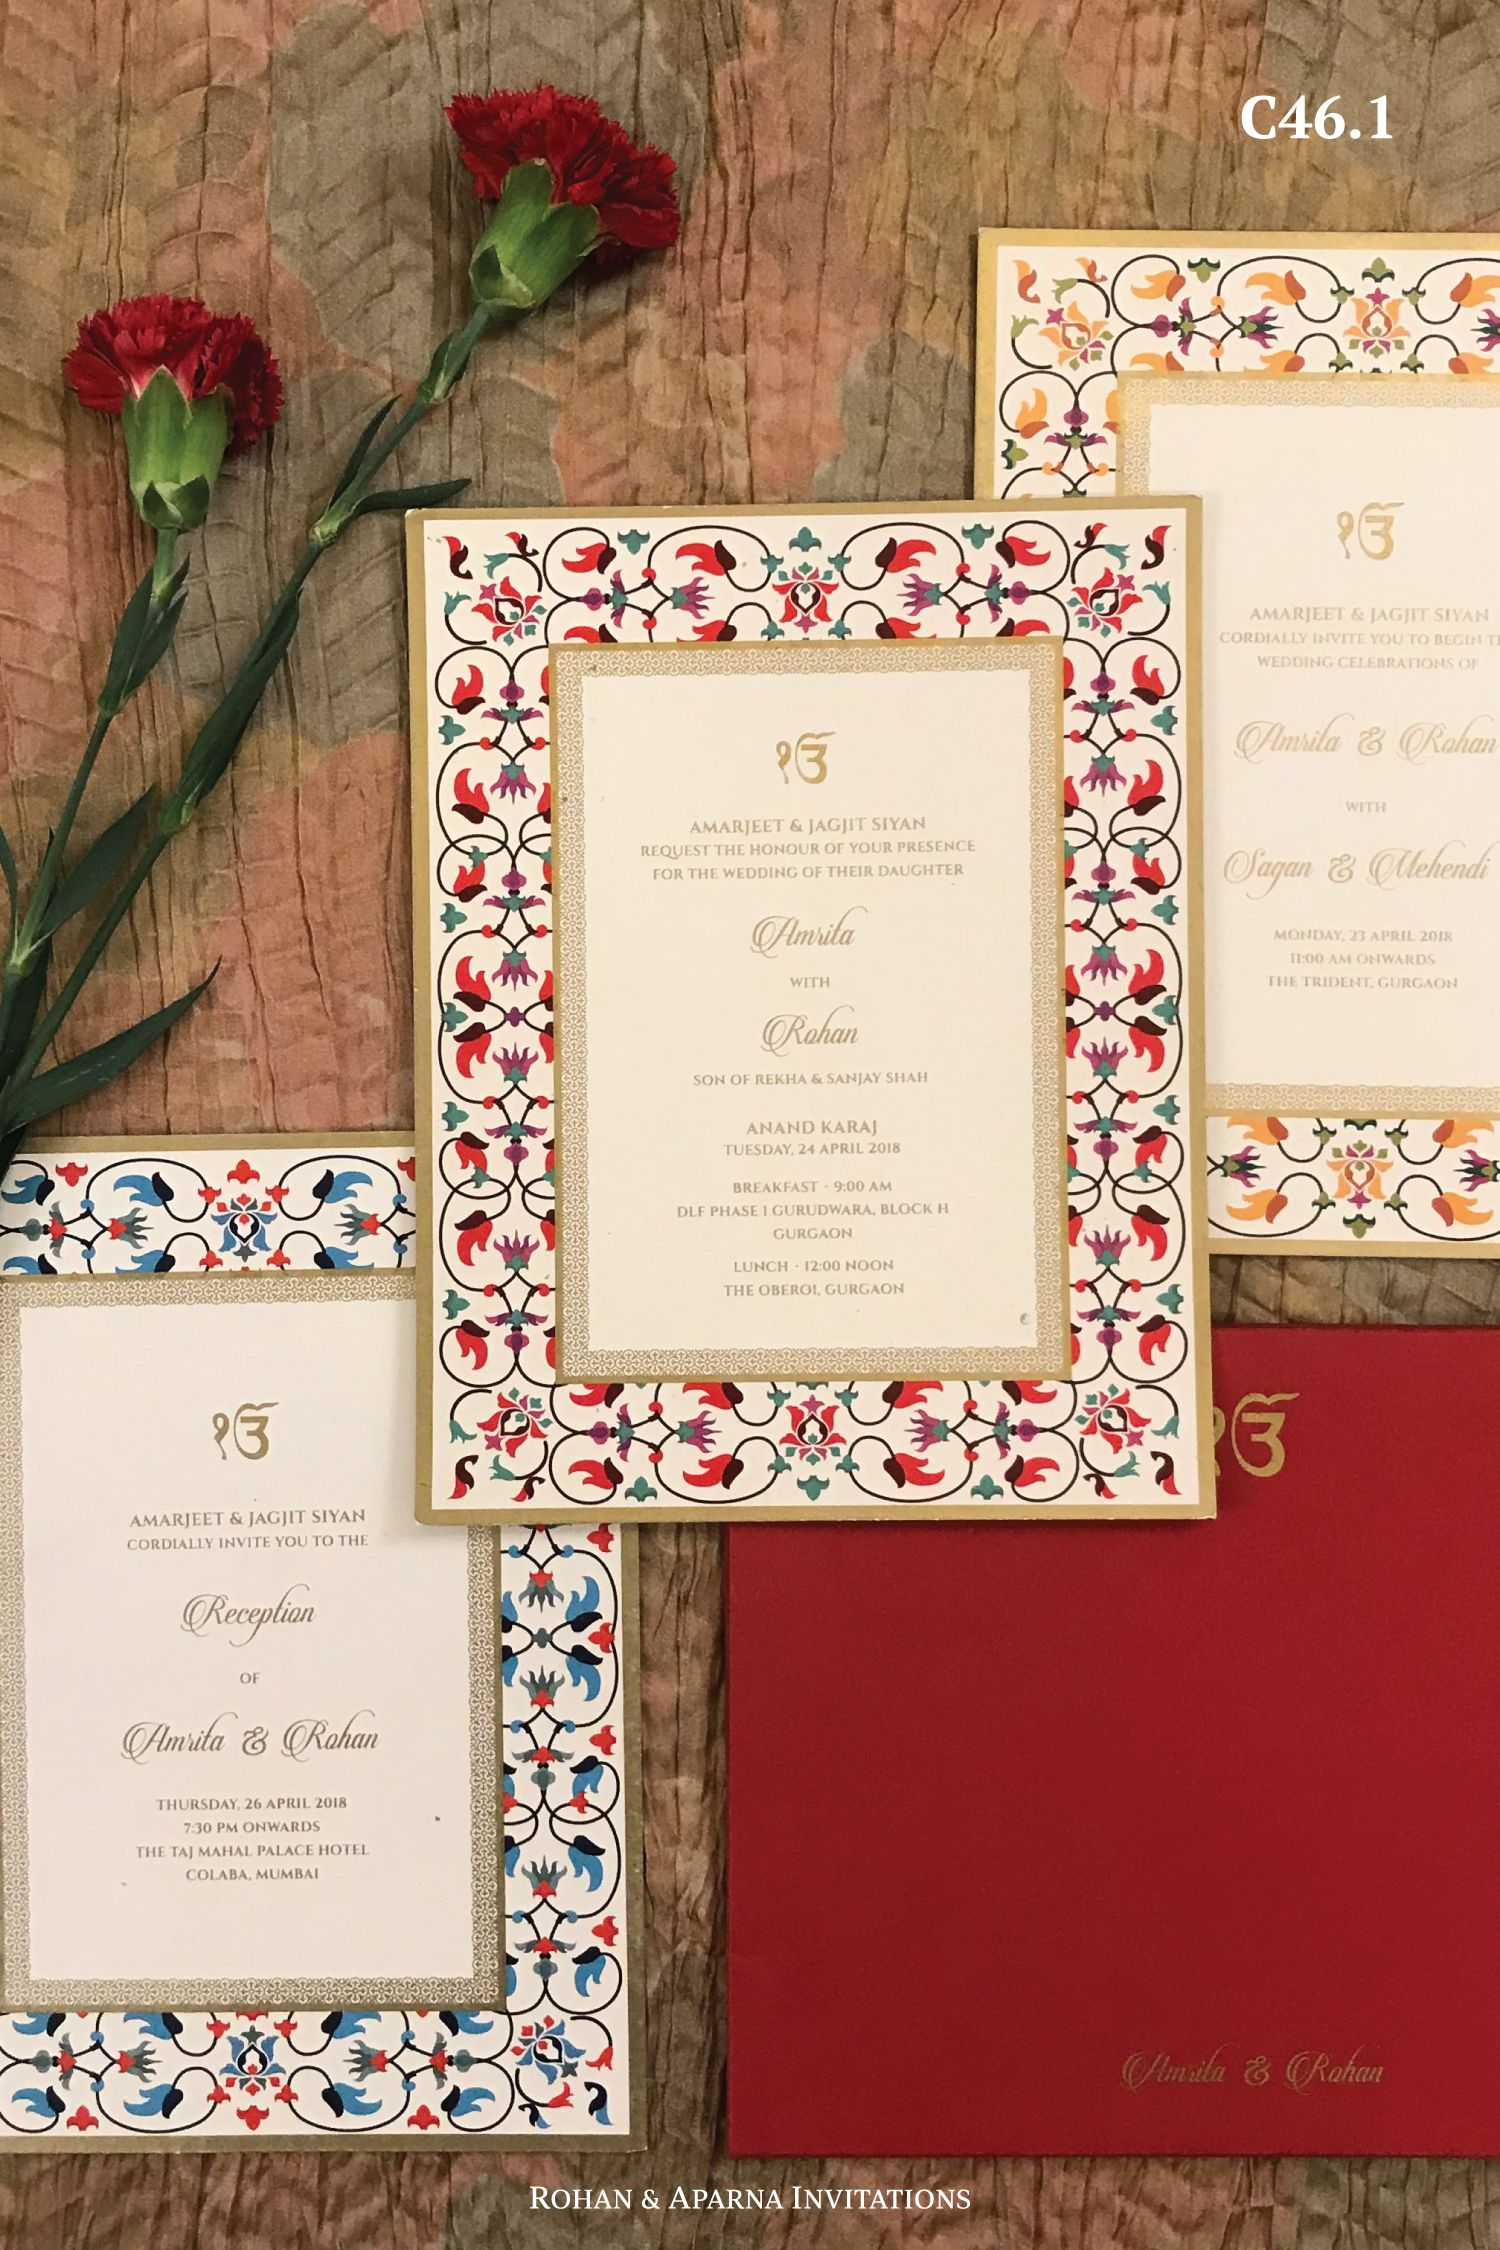 Colorful inlay work inspired wedding invitation . For more design ideas, visit www.rohanaparna.com ——————————————— #rohanaparnainvitations #invitations #weddinginvitations #weddingcard #uniqueinvitations #weddingcards #uniqueweddinginvitations #weddingstationery #hinduweddingcards #weddingphotography #indianwedding #invitationideas #indianweddingcards #destinationwedding #weddingcards #wedding #inlaywork #tajmahal